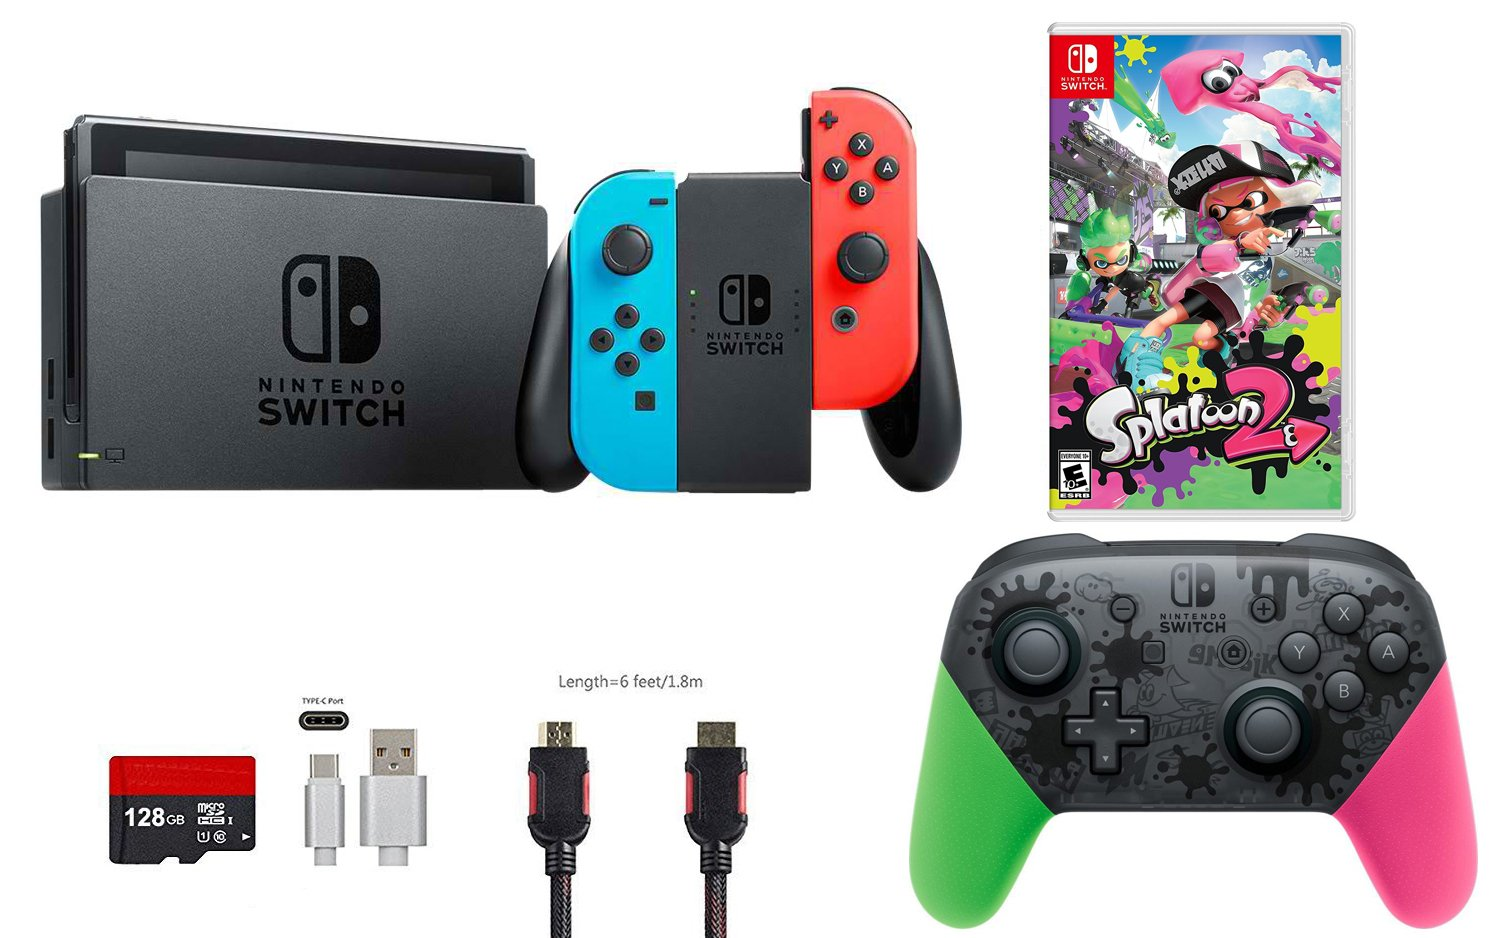 Nintendo Switch Bundle (7 items): 32GB Console Neon Red Blue Joy-con, Nintendo Switch Pro Controller Splatoon 2 Edition, Game Disc-Splatoon 2, 128GB Micro SD Card, Type C Cable, HDMI Wall Charger